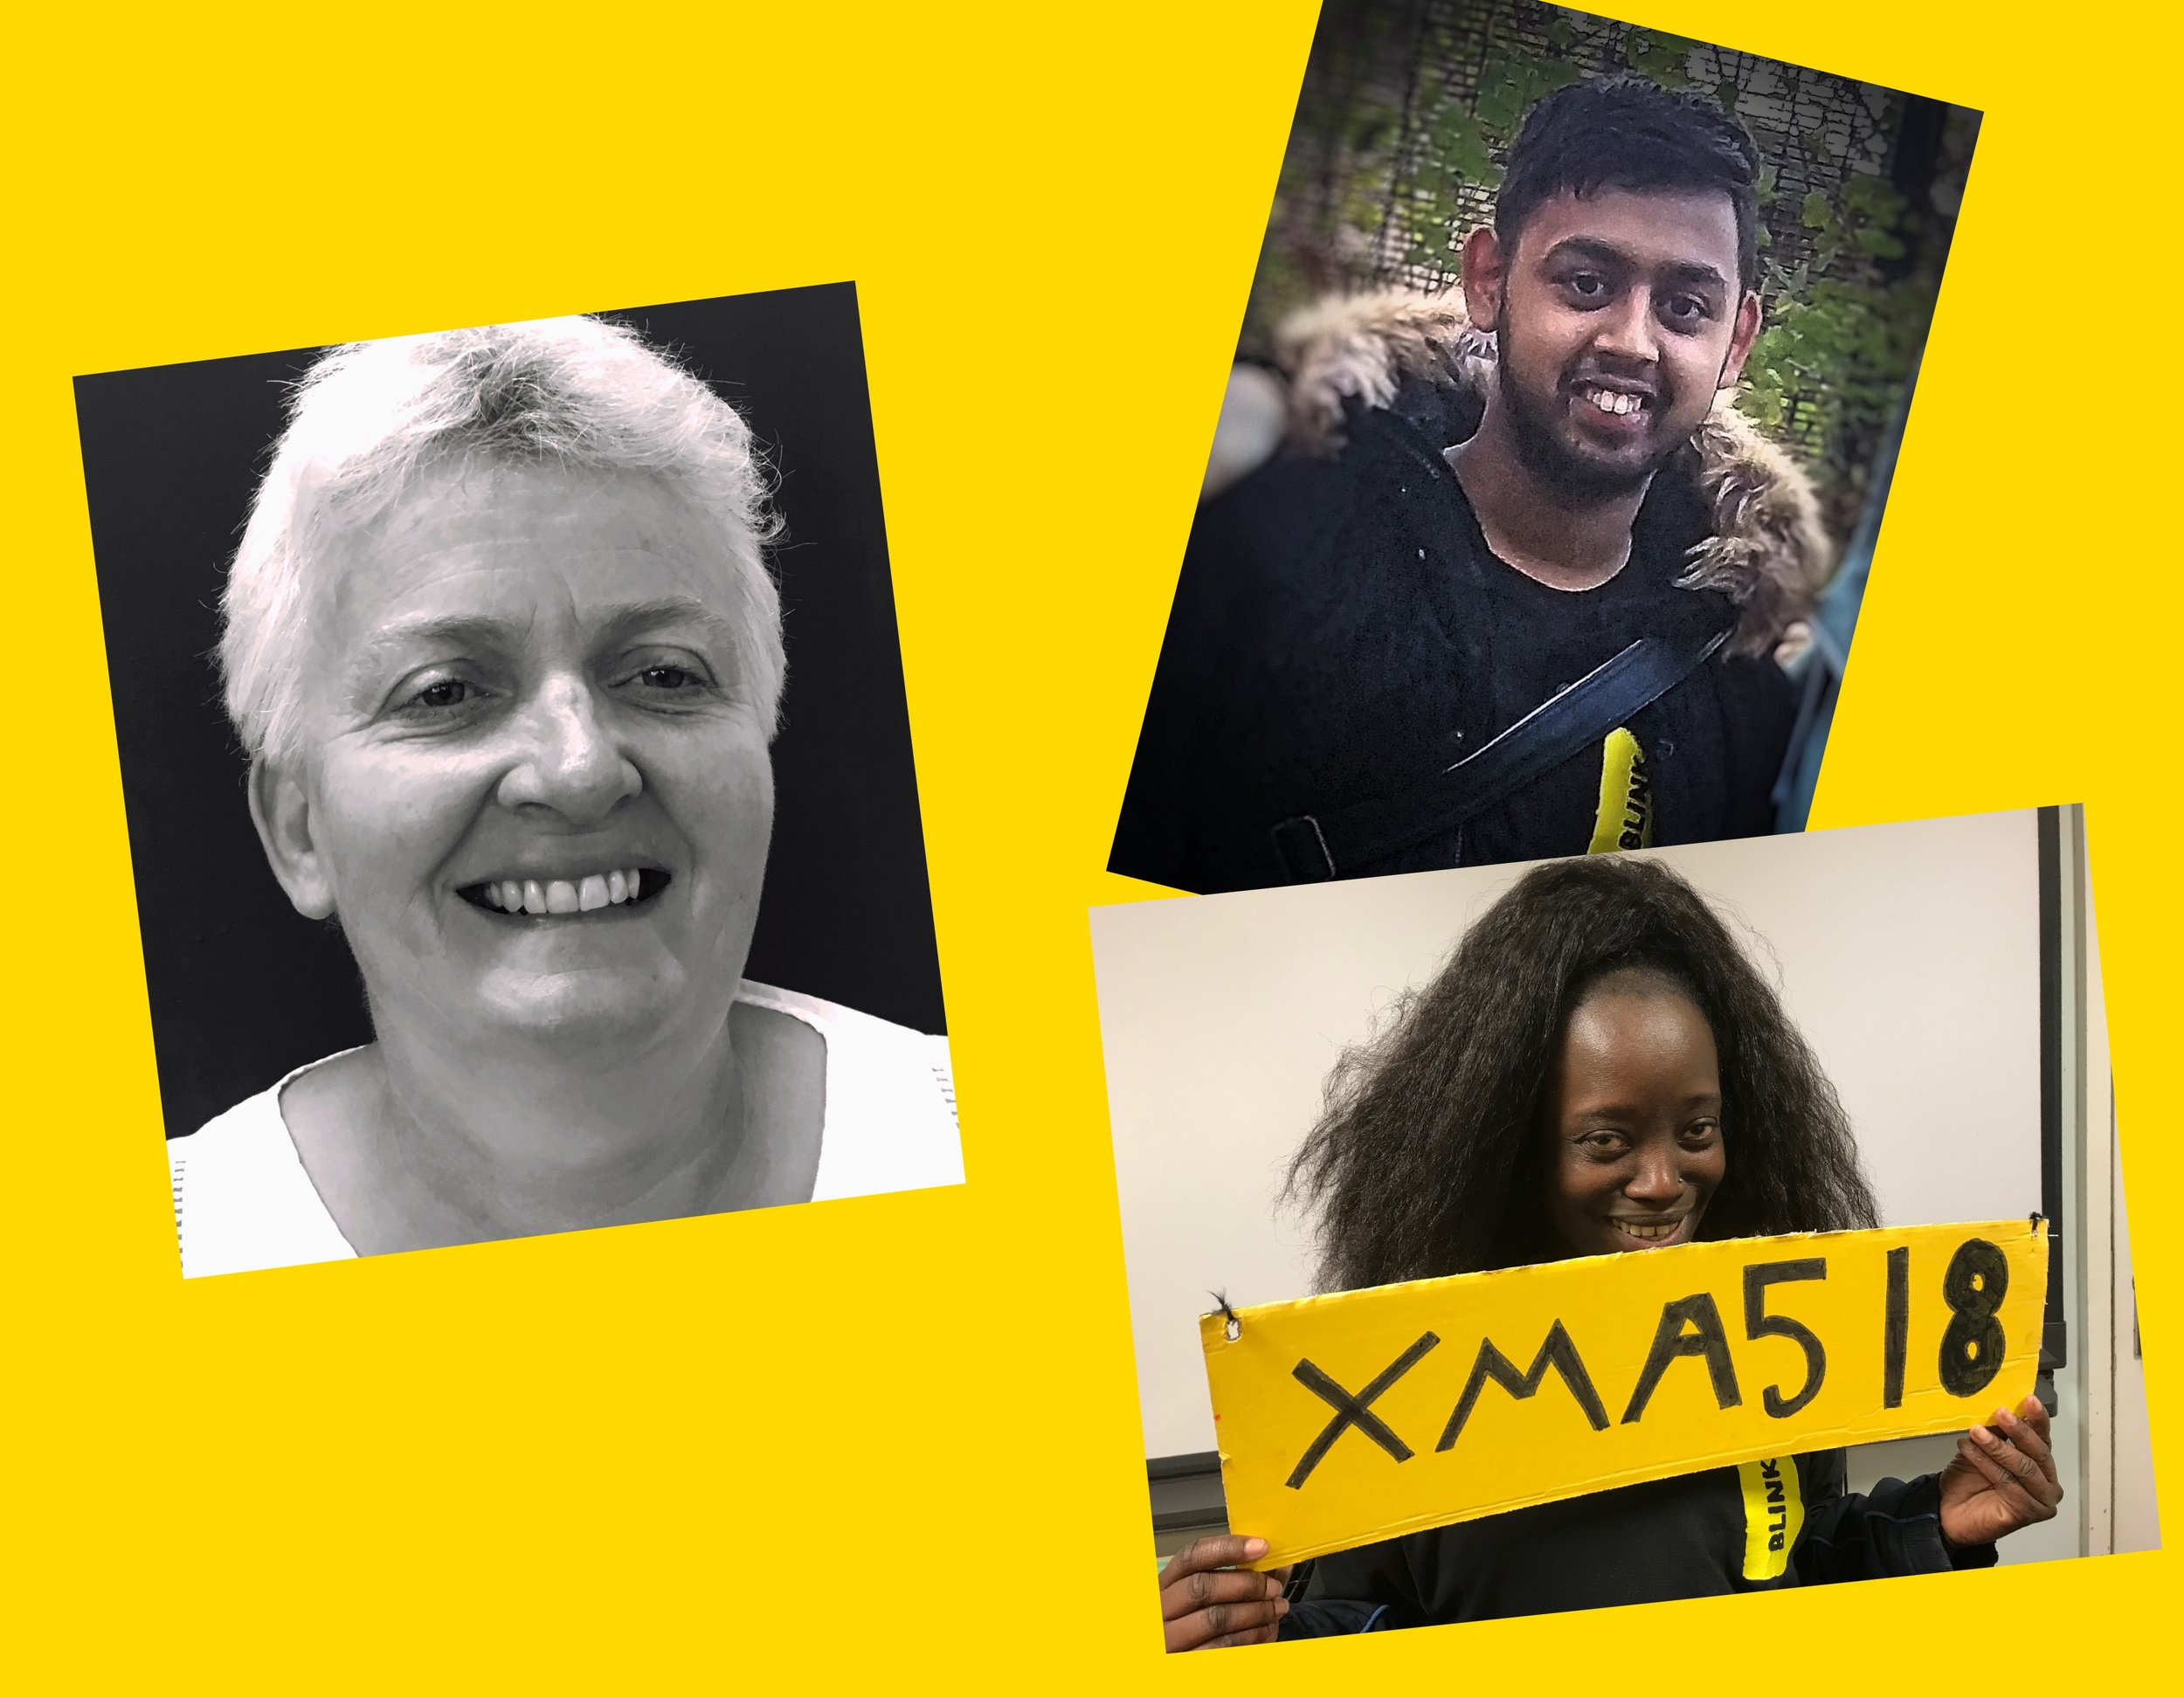 [description] A collage of 3 pictures Left: Mandy has cropped blonde hair, and a wide friendly smile. Left bottom: Maisa is a young female with a shy smile and a sparkle in her eye and long black wavy hair. She is holding a yellow sign which reads XMAS 18 from our Winter show. Left bottomt: Sabir is a young man with a relaxed smile, short brown hair with a short beard. He is pictured outside of the school gates with his Winter coat on and his BLINK t shirt peeking through.